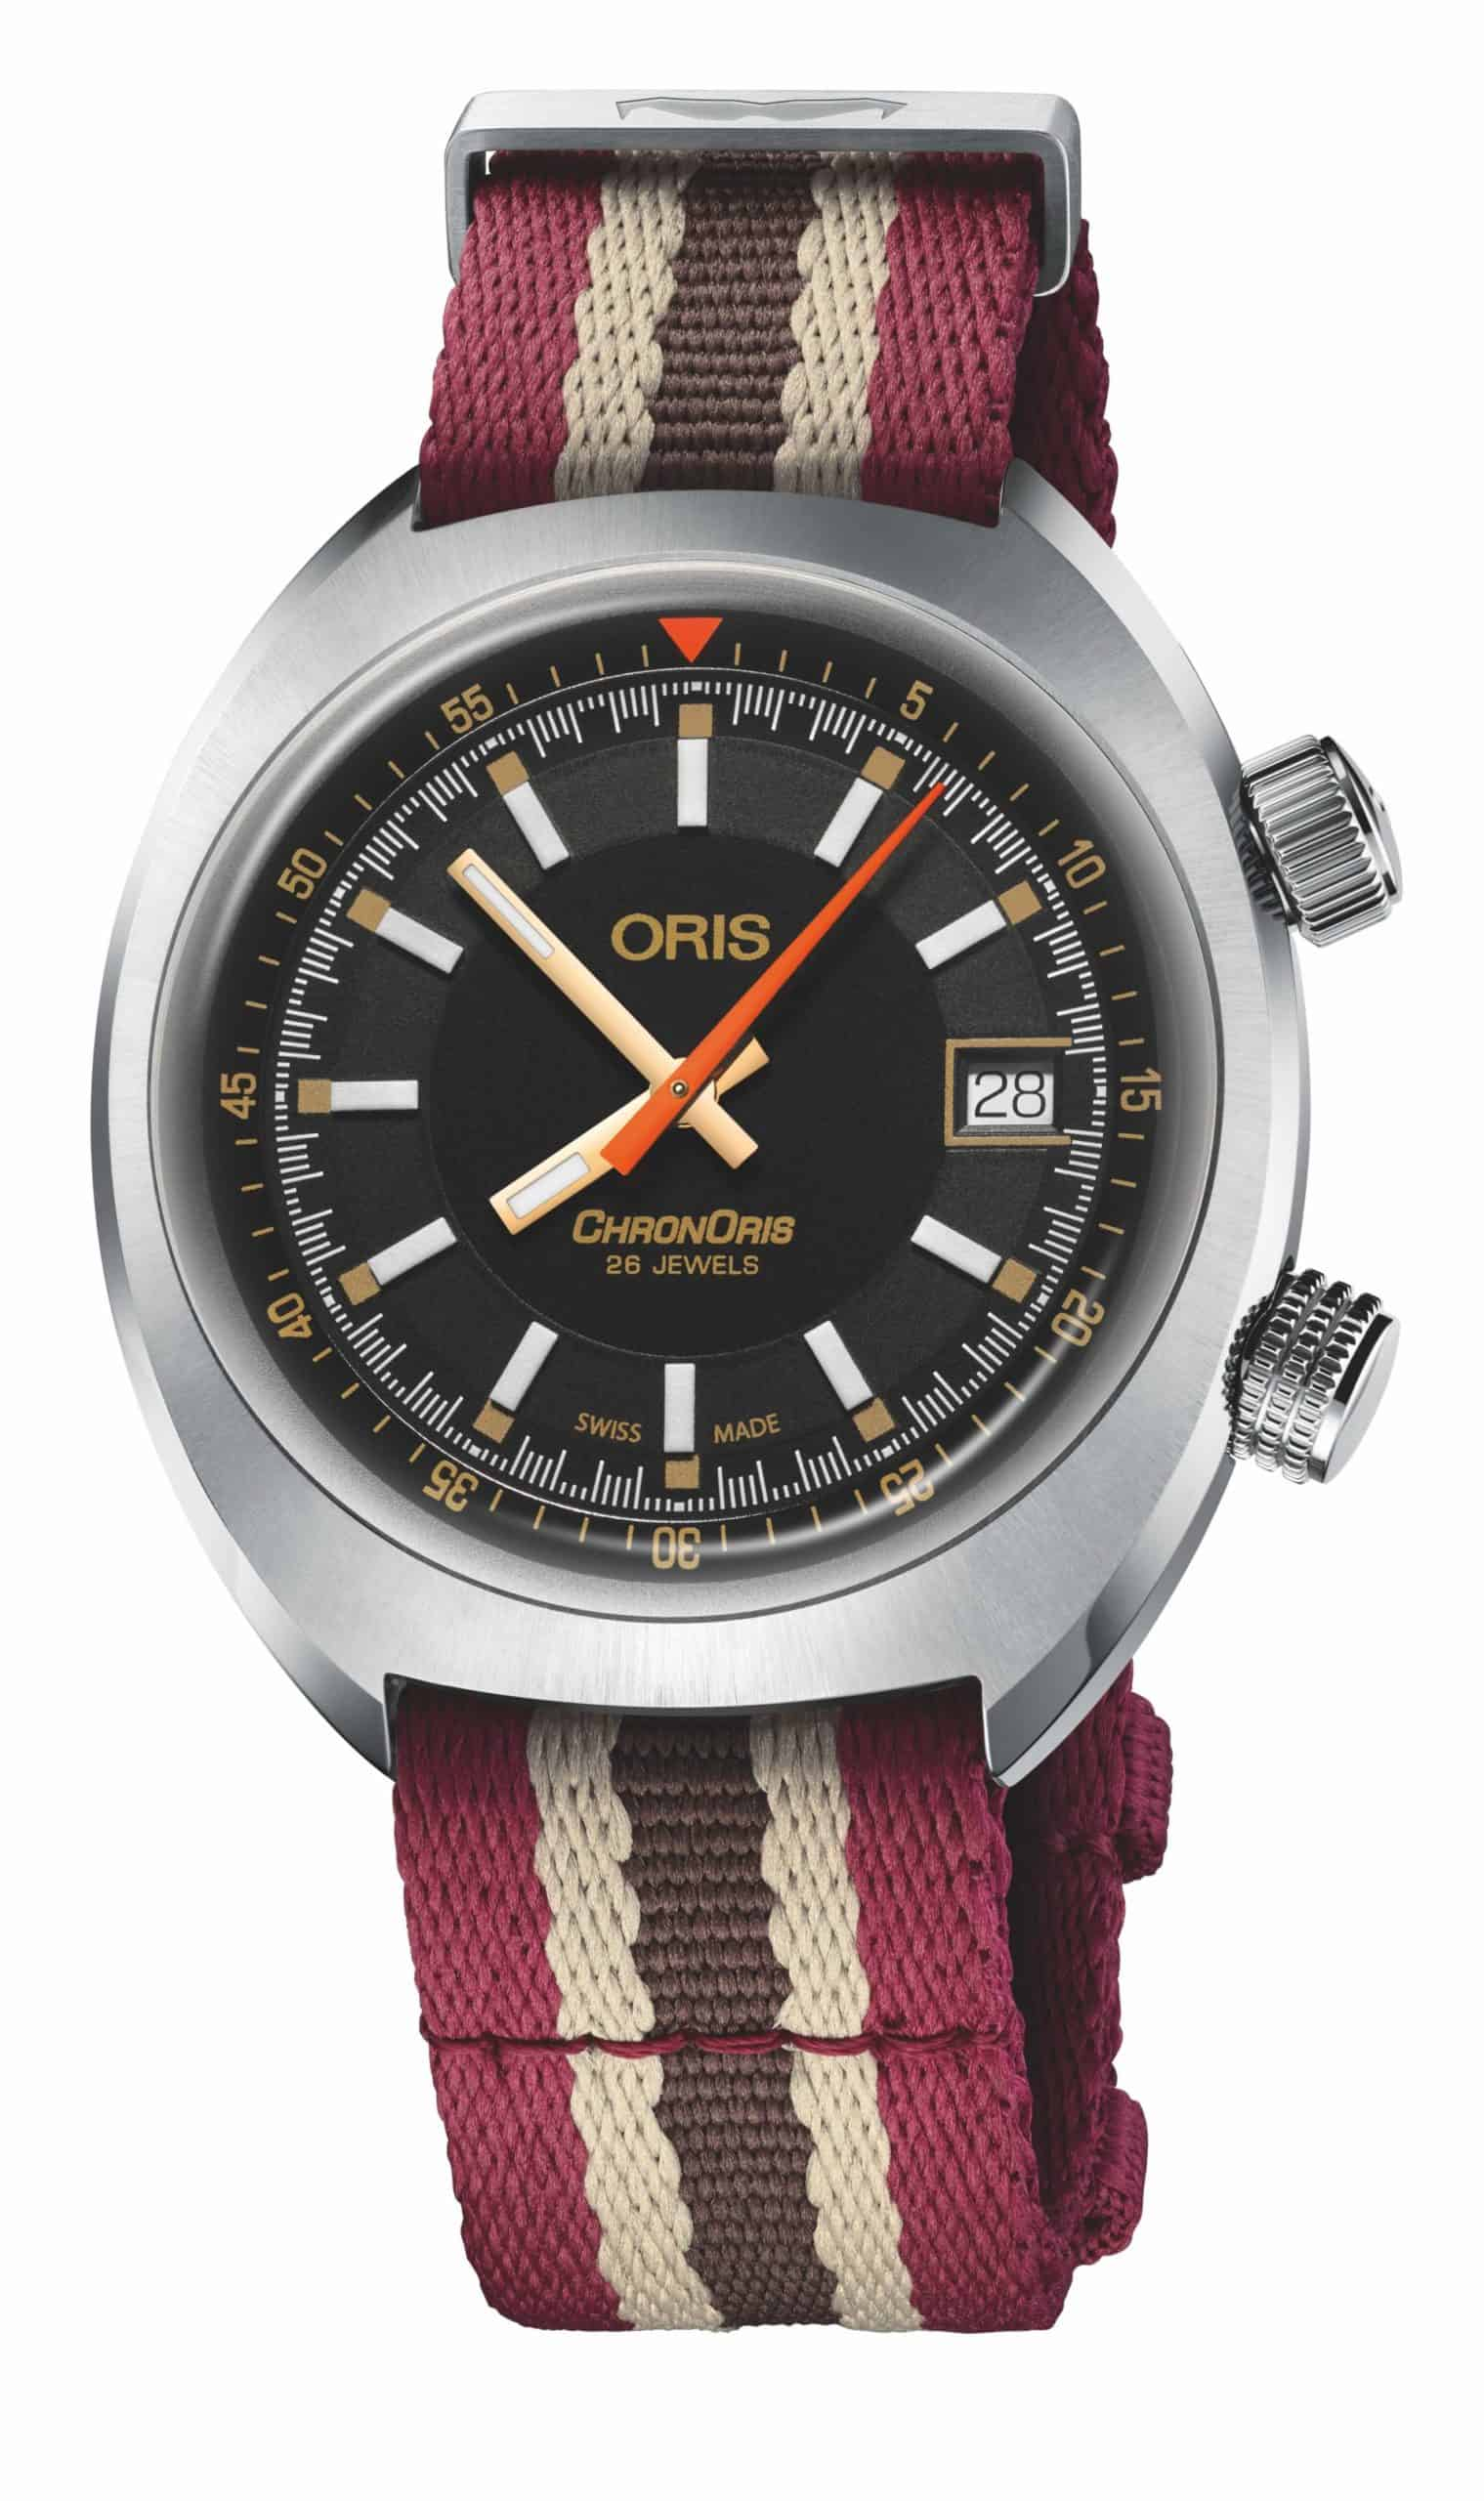 Oris Chronoris Movember Edition 2019 01 733 7737 4034 Natostrap scaled